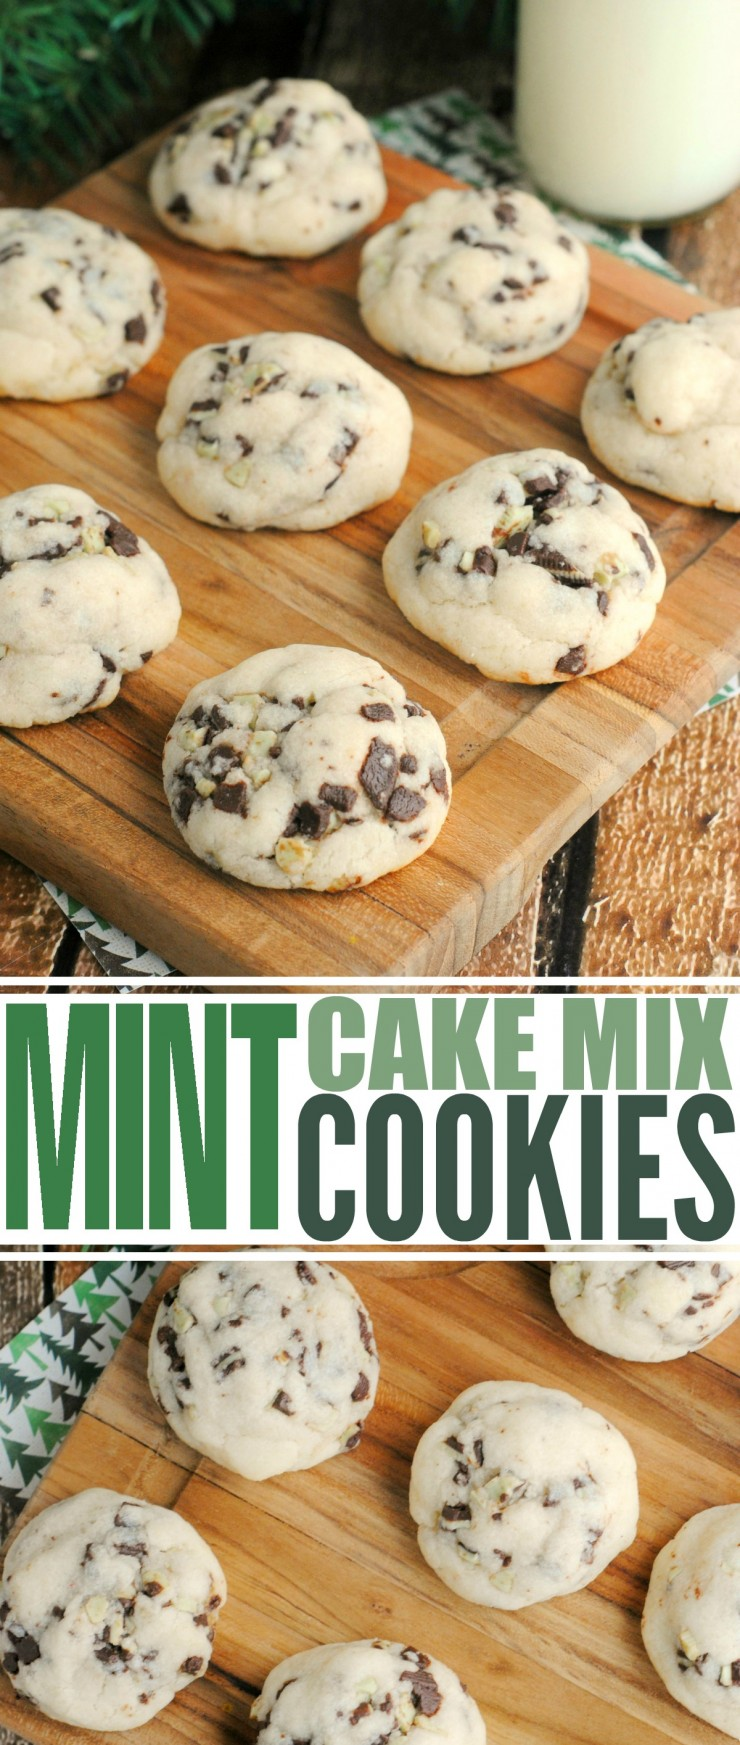 These Mint Cake Mix Cookies are an easy and delicious Christmas cookie made with cake mix and Andes mint baking bits.